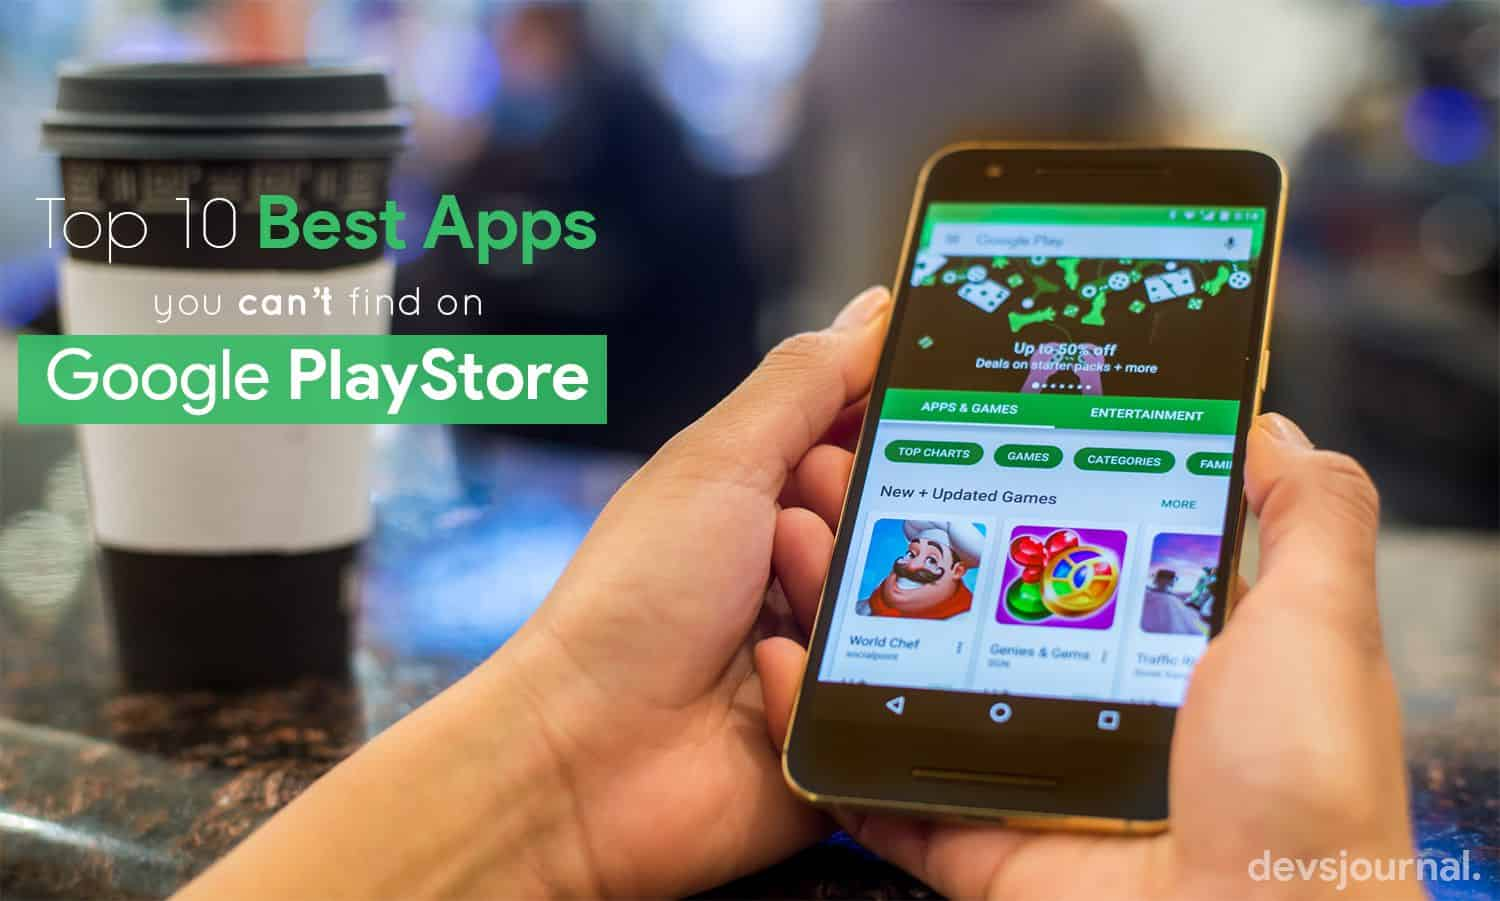 Best dating apps on playstore